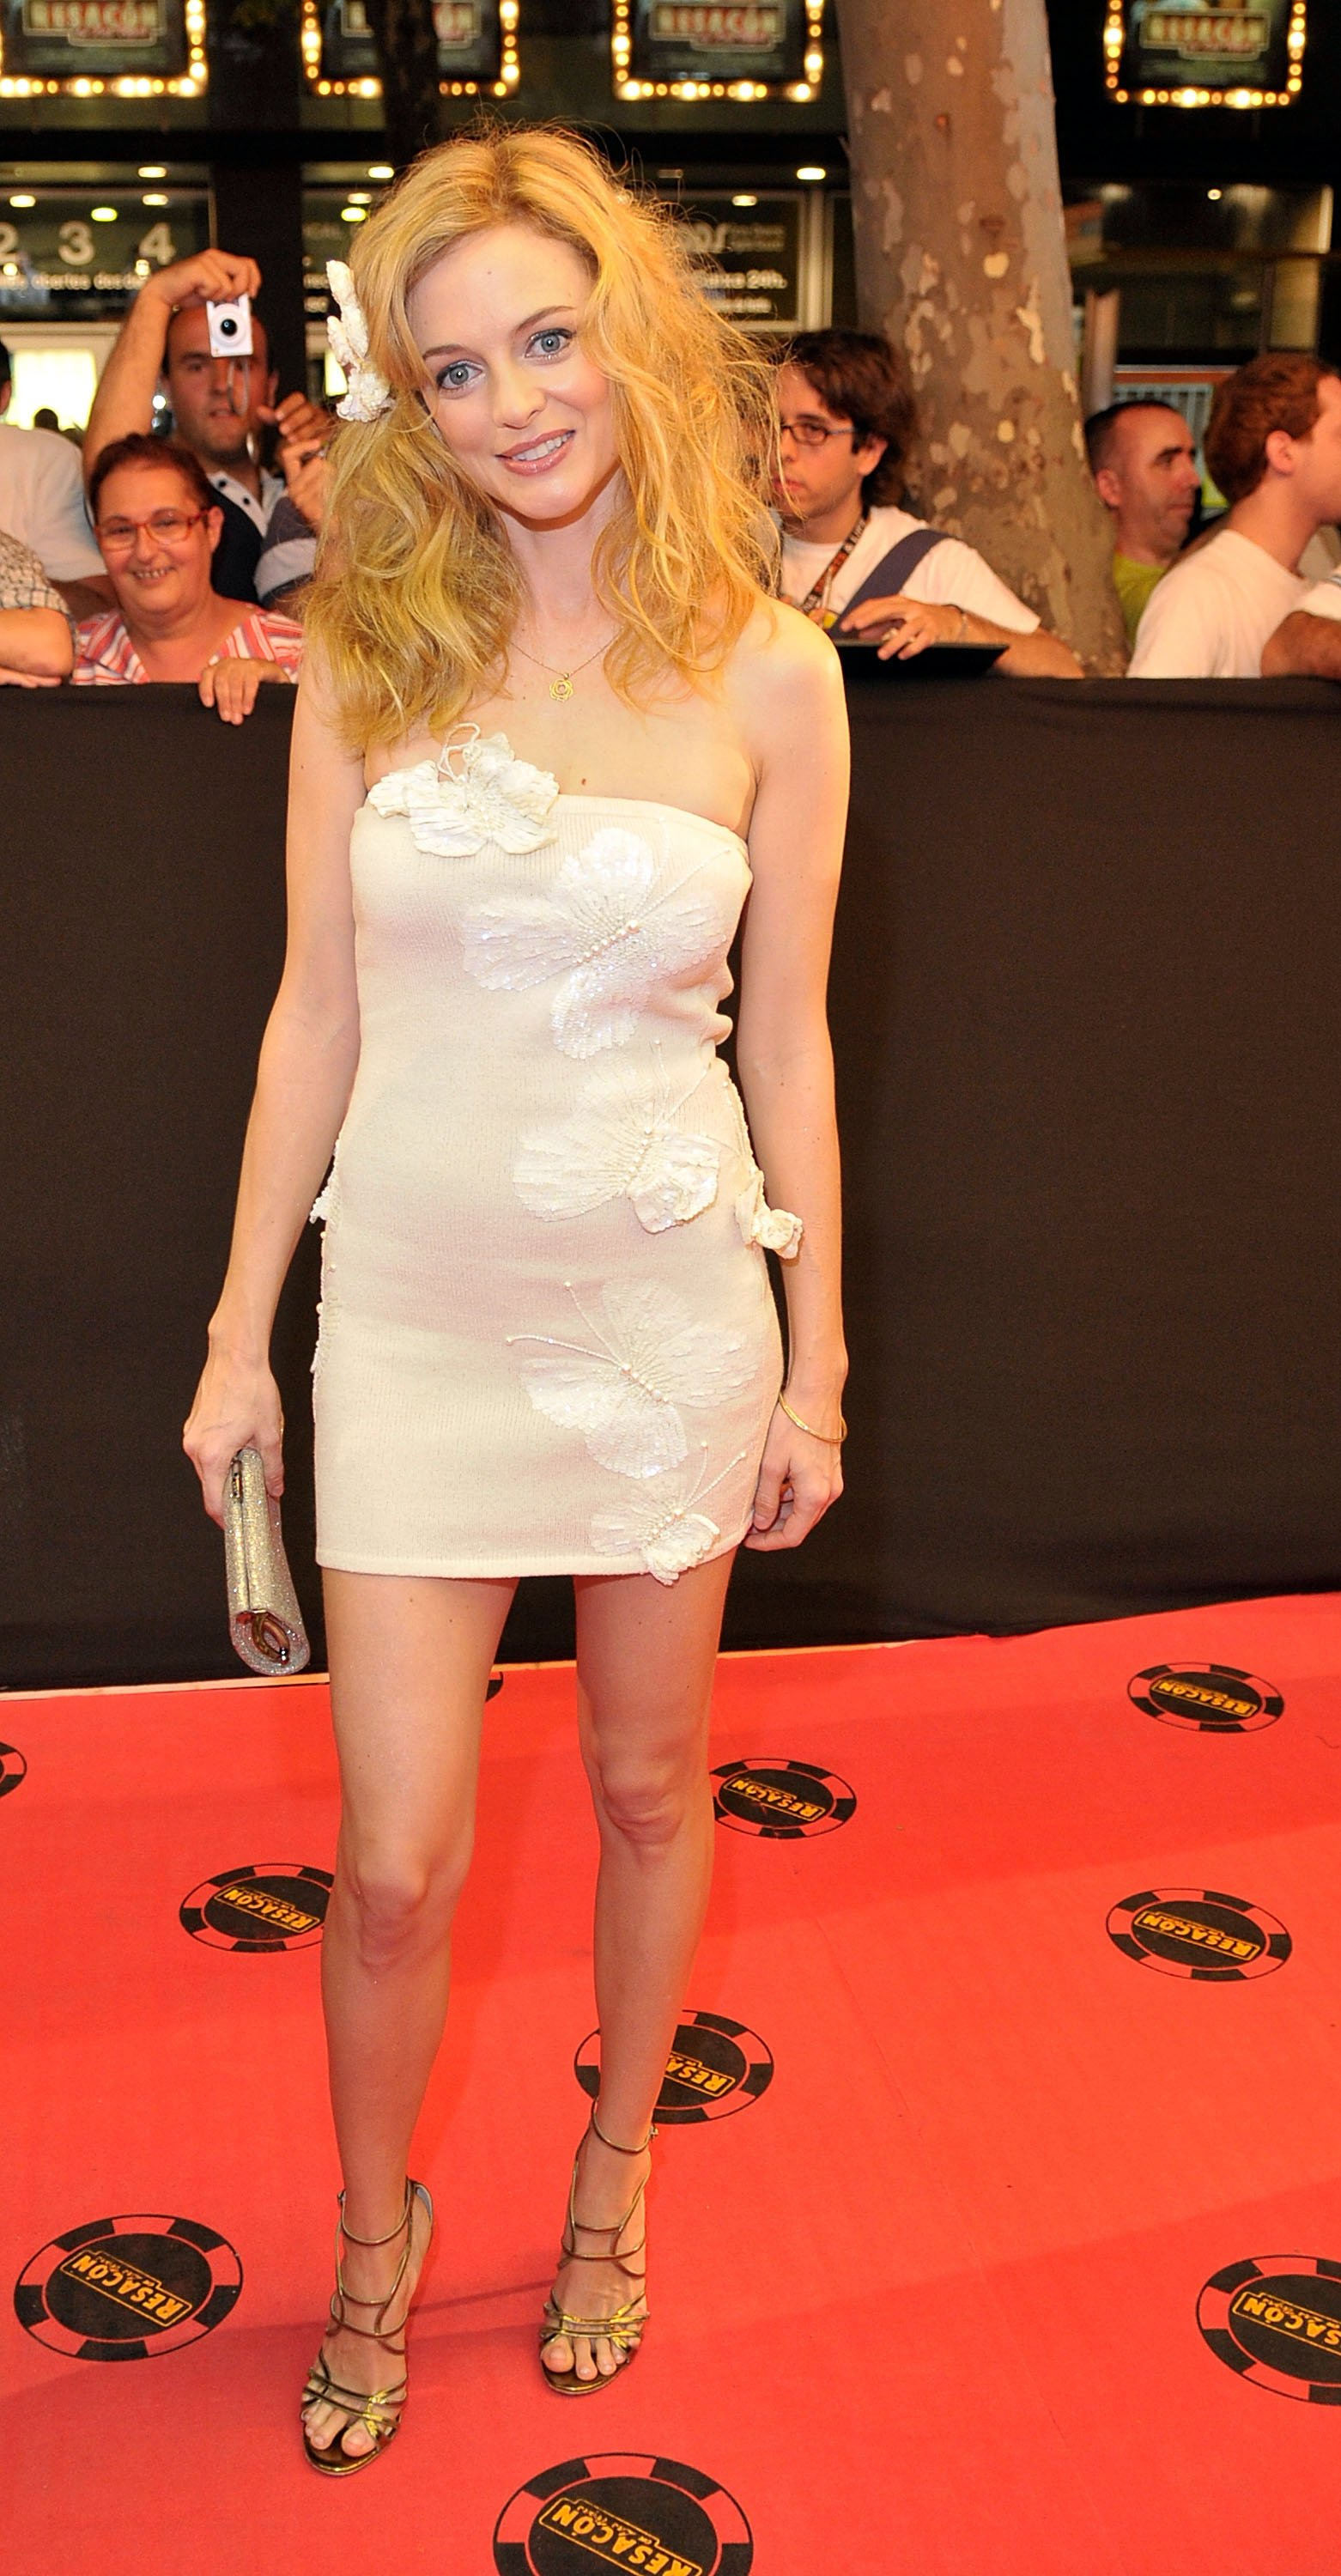 Heather graham legs